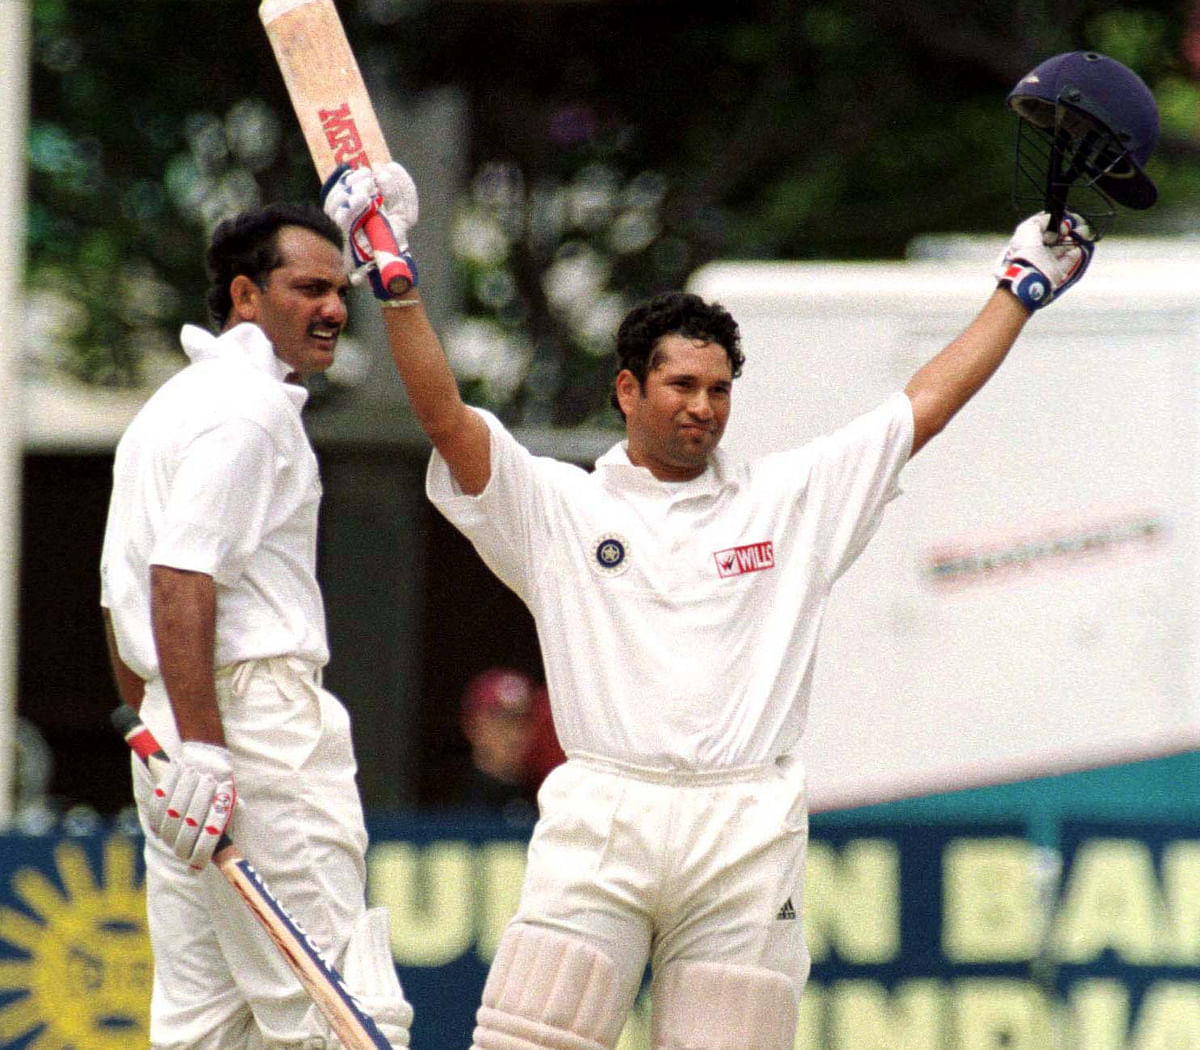 Sachin Tendulkar raises his arms to the crowd after scoring a century against New Zealand as his captain Mohammad Azharuddin looks on, during day four of the second cricket test at the Basin Reserve on 29 December. (Photo: Reuters)